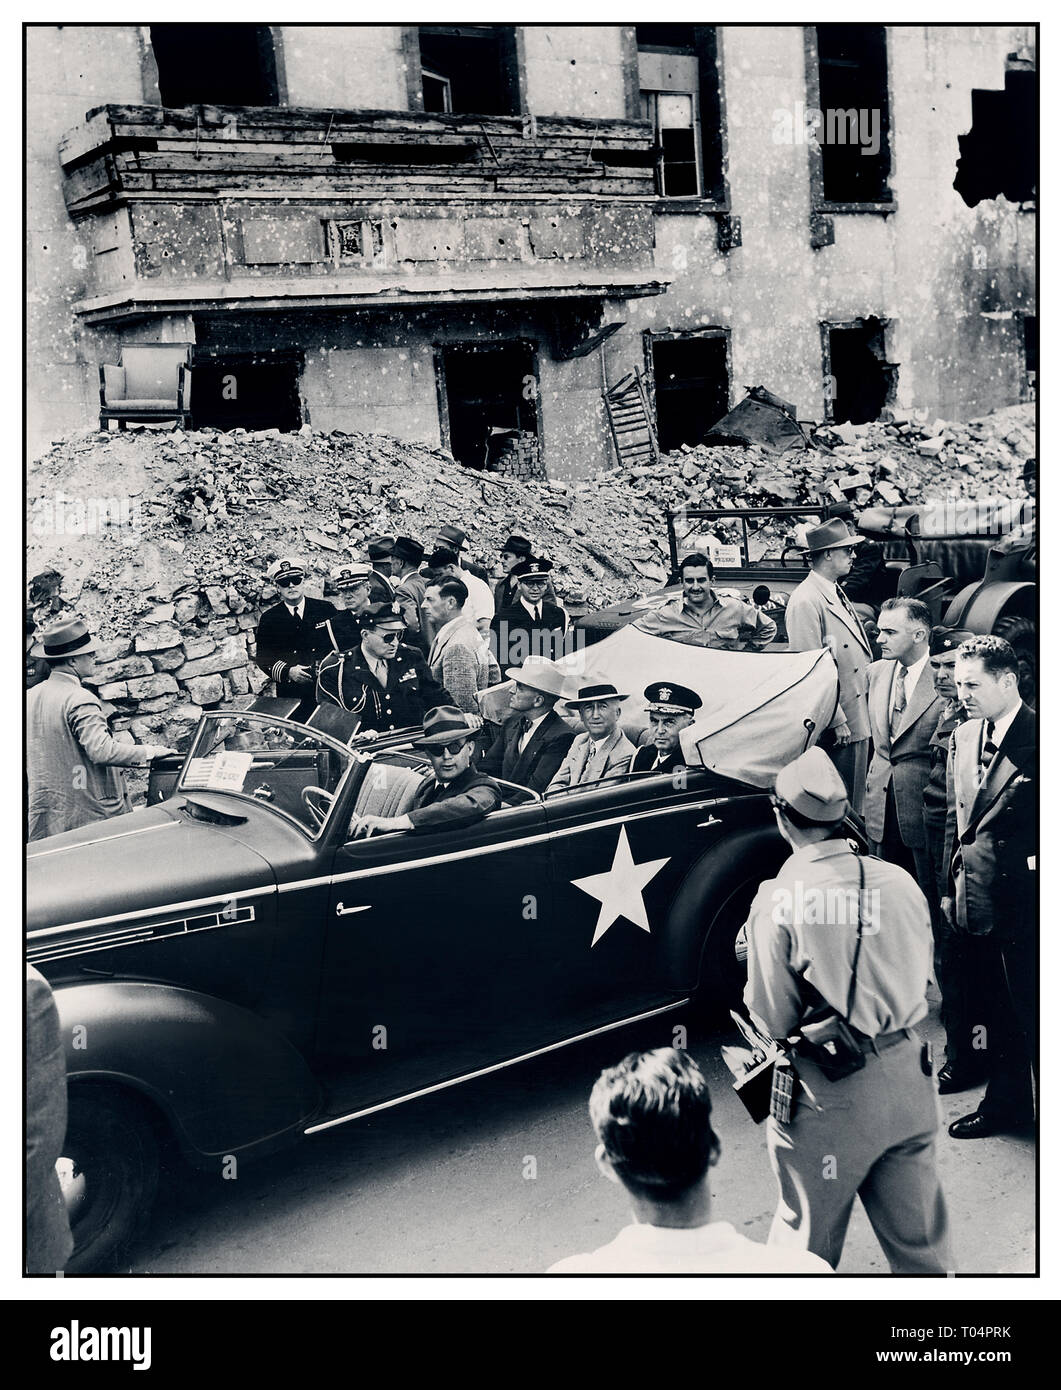 President Truman 1945 Berlin Ruins Post WW2 1945 photograph ( L to R ) in rear seat of car: President Harry S. Truman, Secretary of State James Byrnes, and Fleet Admiral William Leahy inspect the ruins of Hitler's Chancellery in Berlin, Germany. President Truman is in Germany to attend the Potsdam Conference. Stock Photo